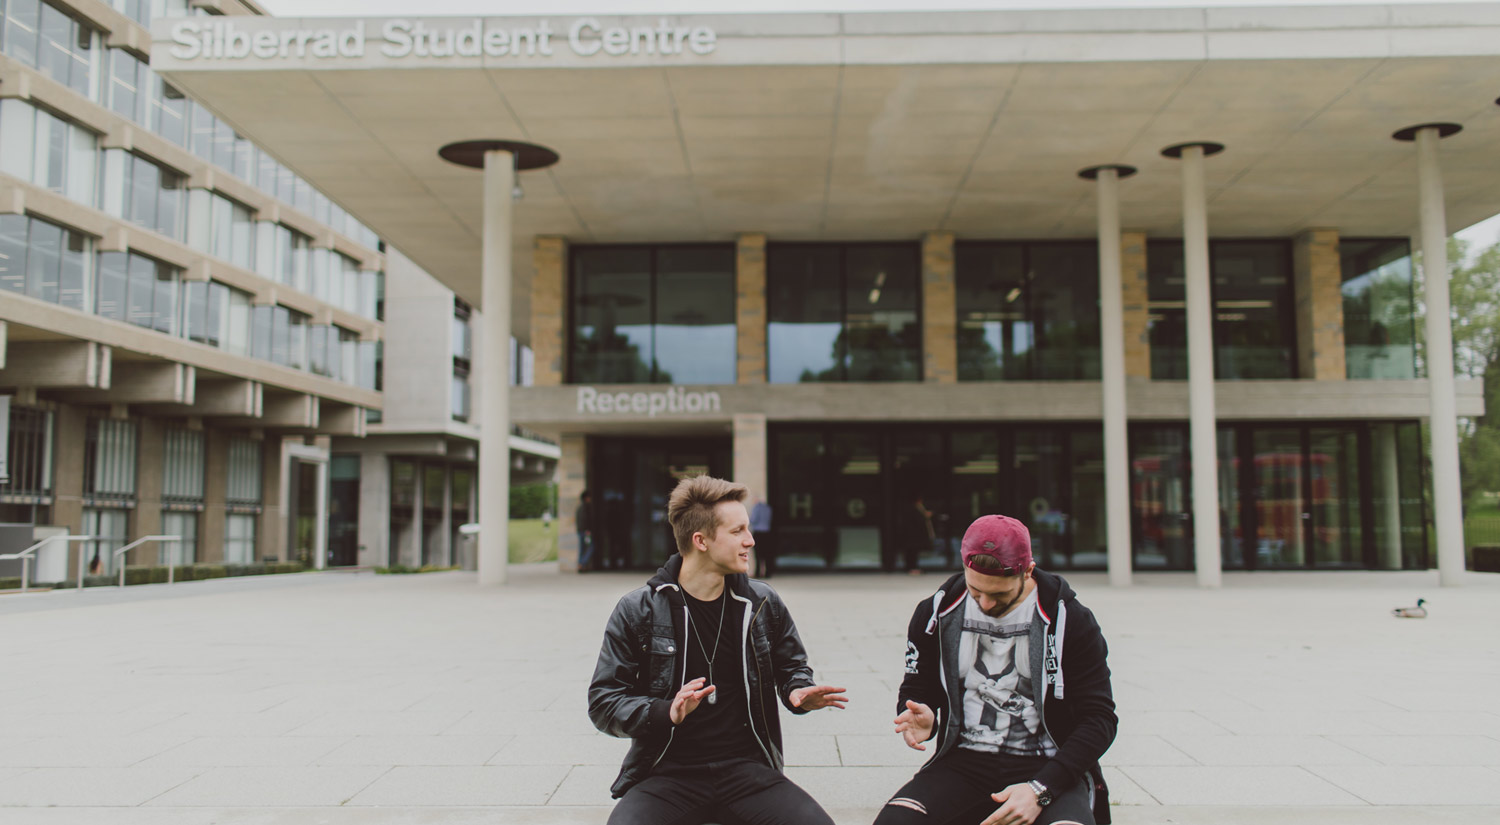 Our iconic buildings provide the perfect backdrop to student life